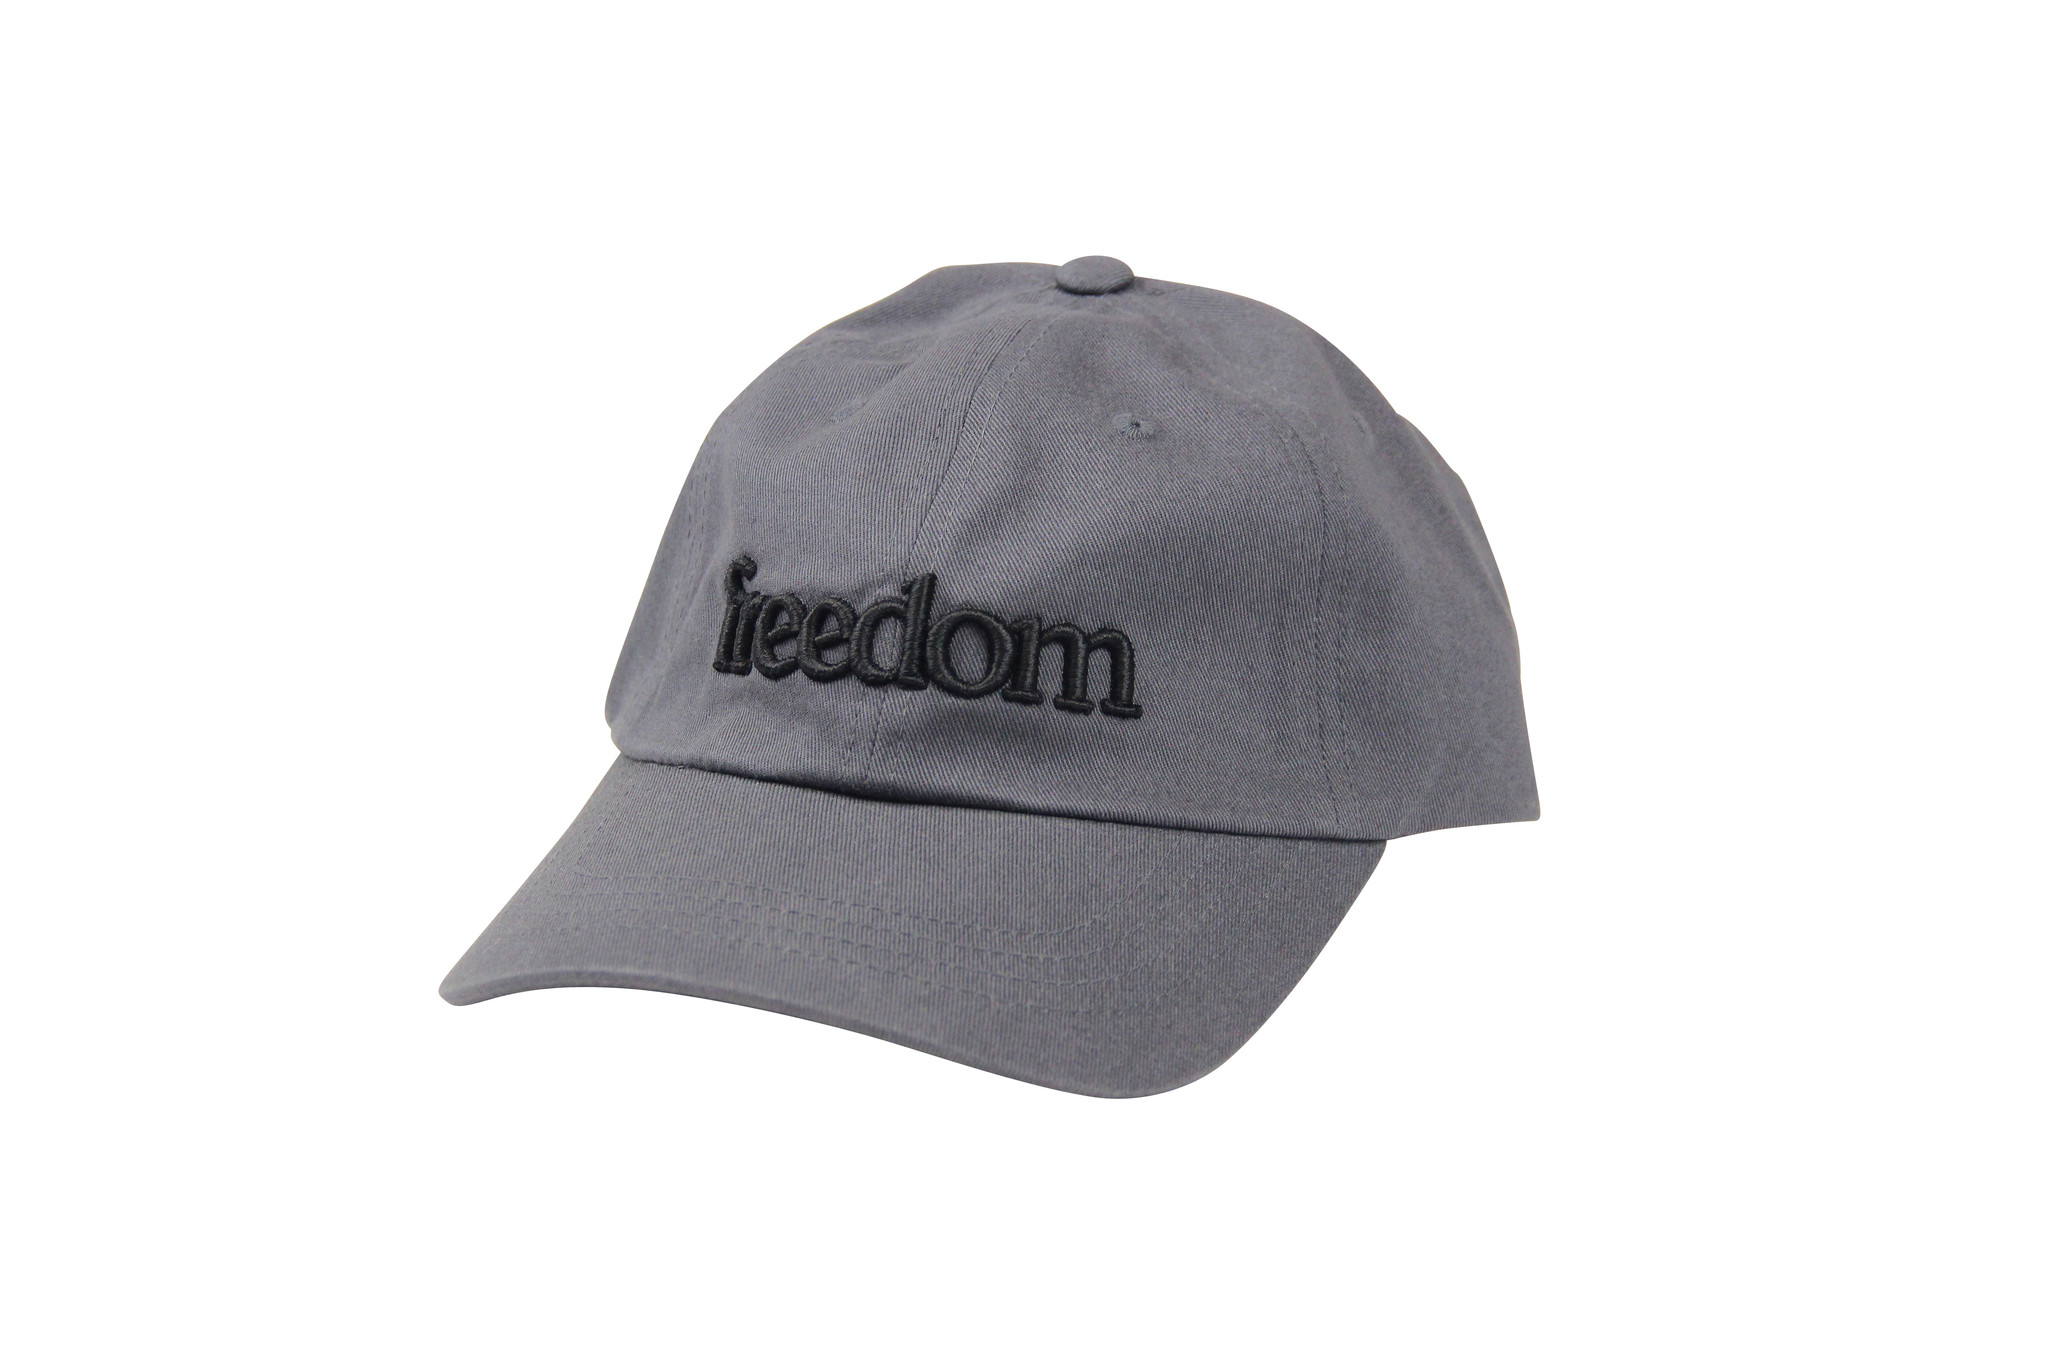 Freedom Boardshop HAT-FREEDOM OG LOW STRAP